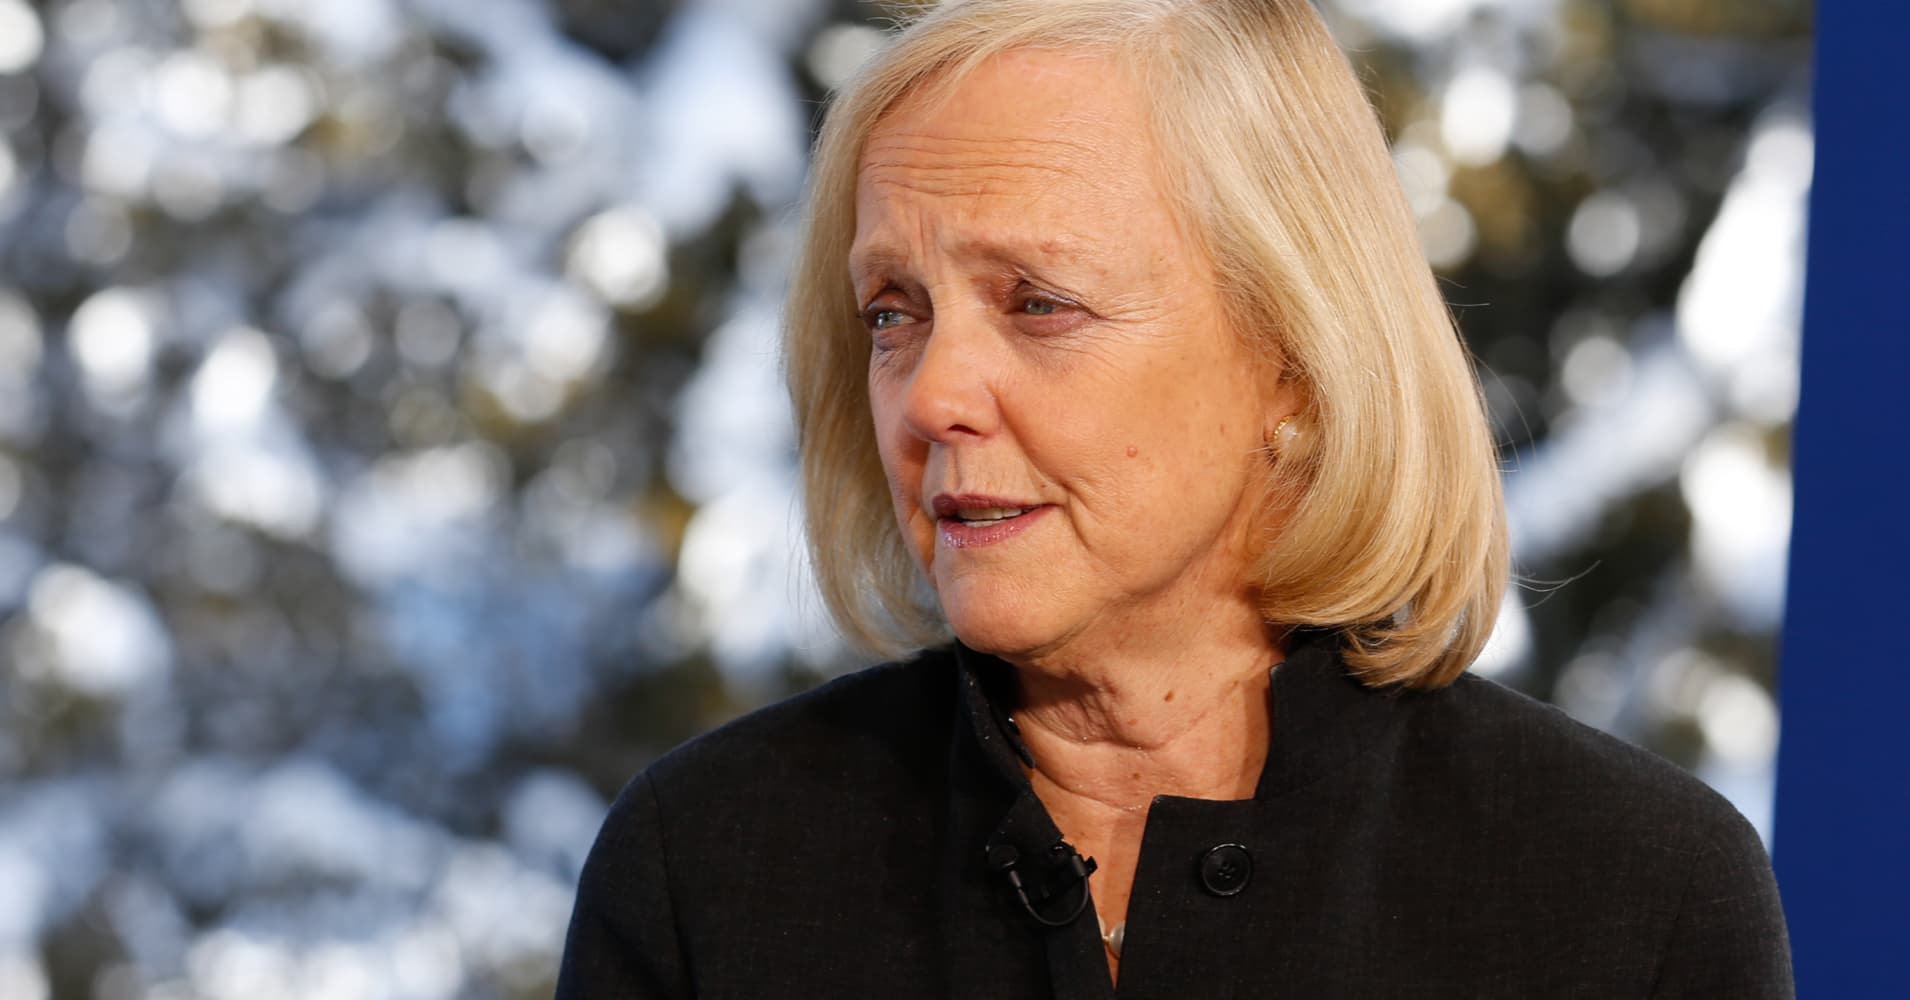 mag whitman 11:39 am et tue, 7 aug 2018 meg whitman, newtv ceo and former hewlett-packard ceo, and jeffrey katzenberg, newtv founder and dreamworks animation co.